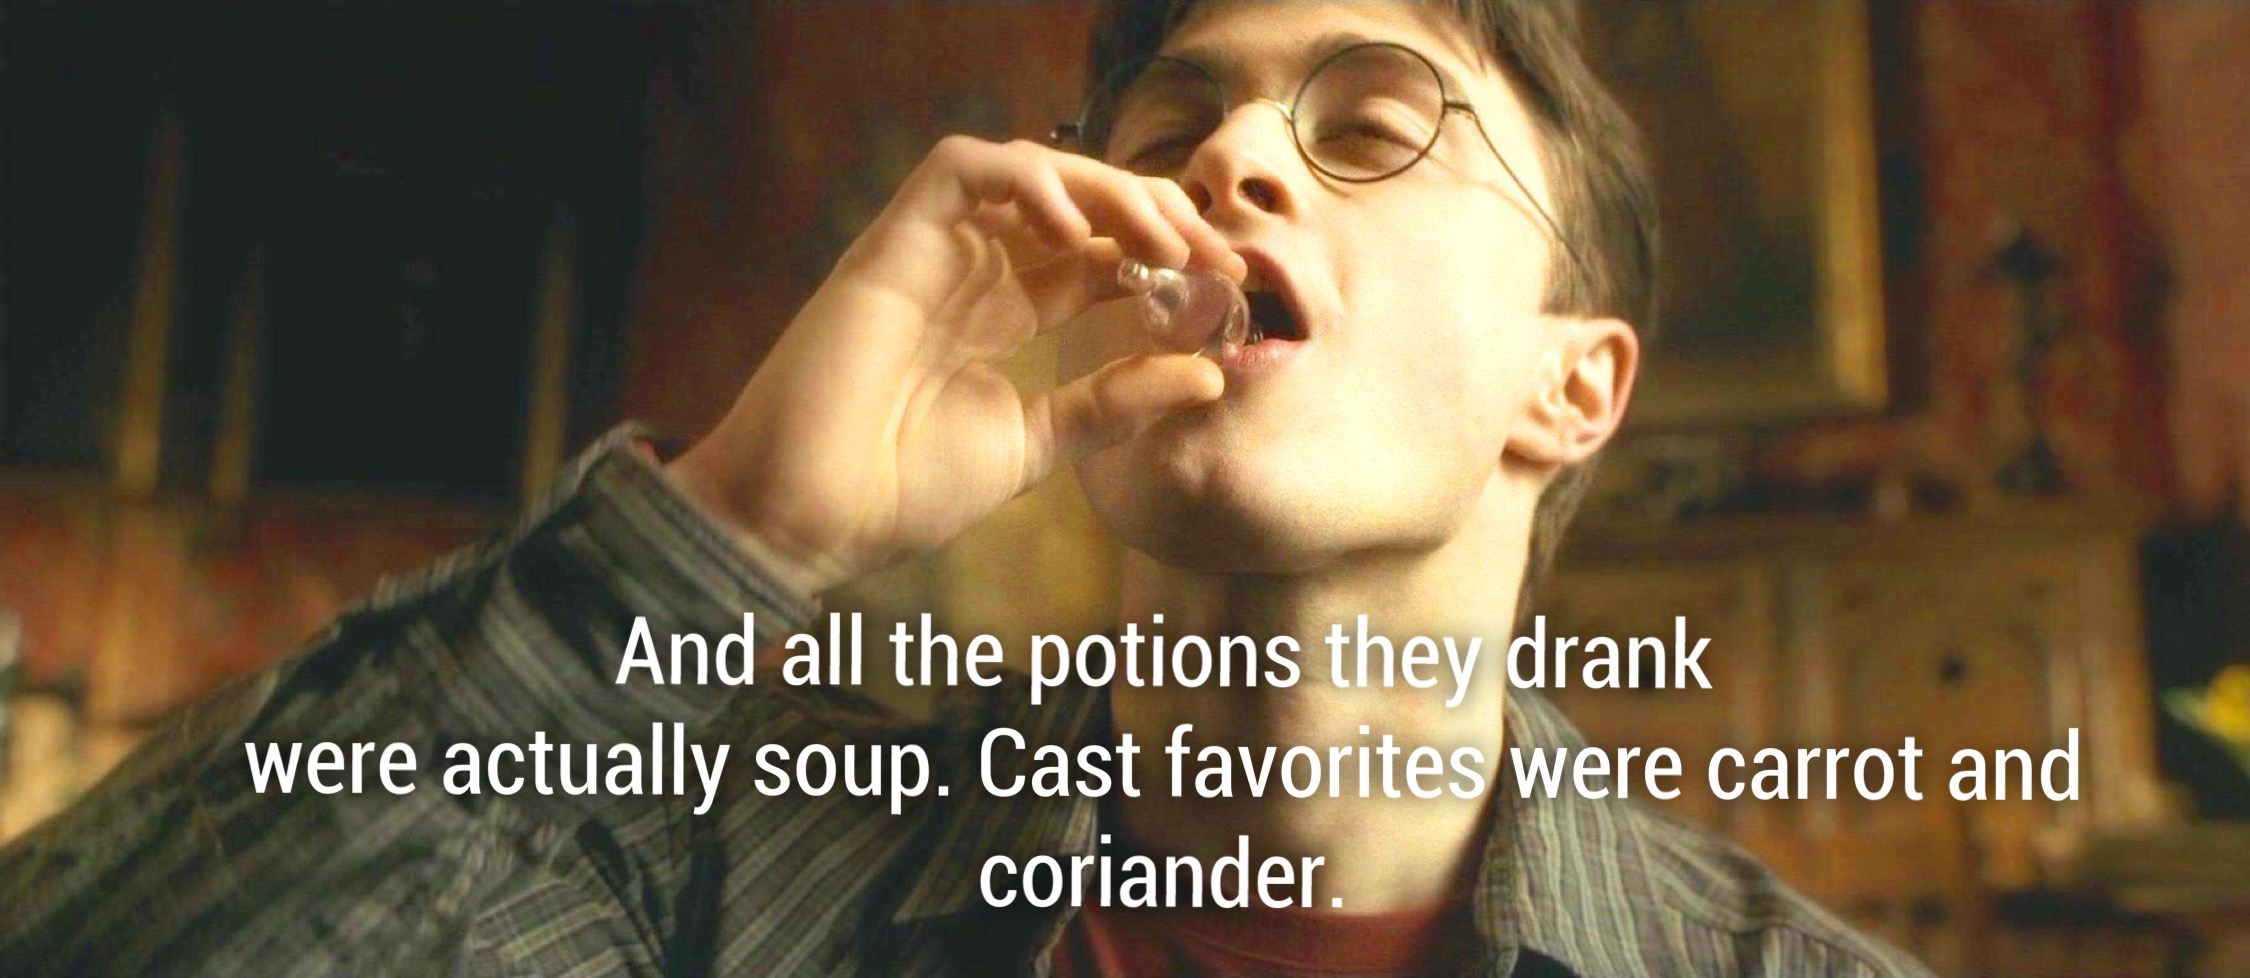 70 Harry Potter Facts That Will Make You Love The Films Even More